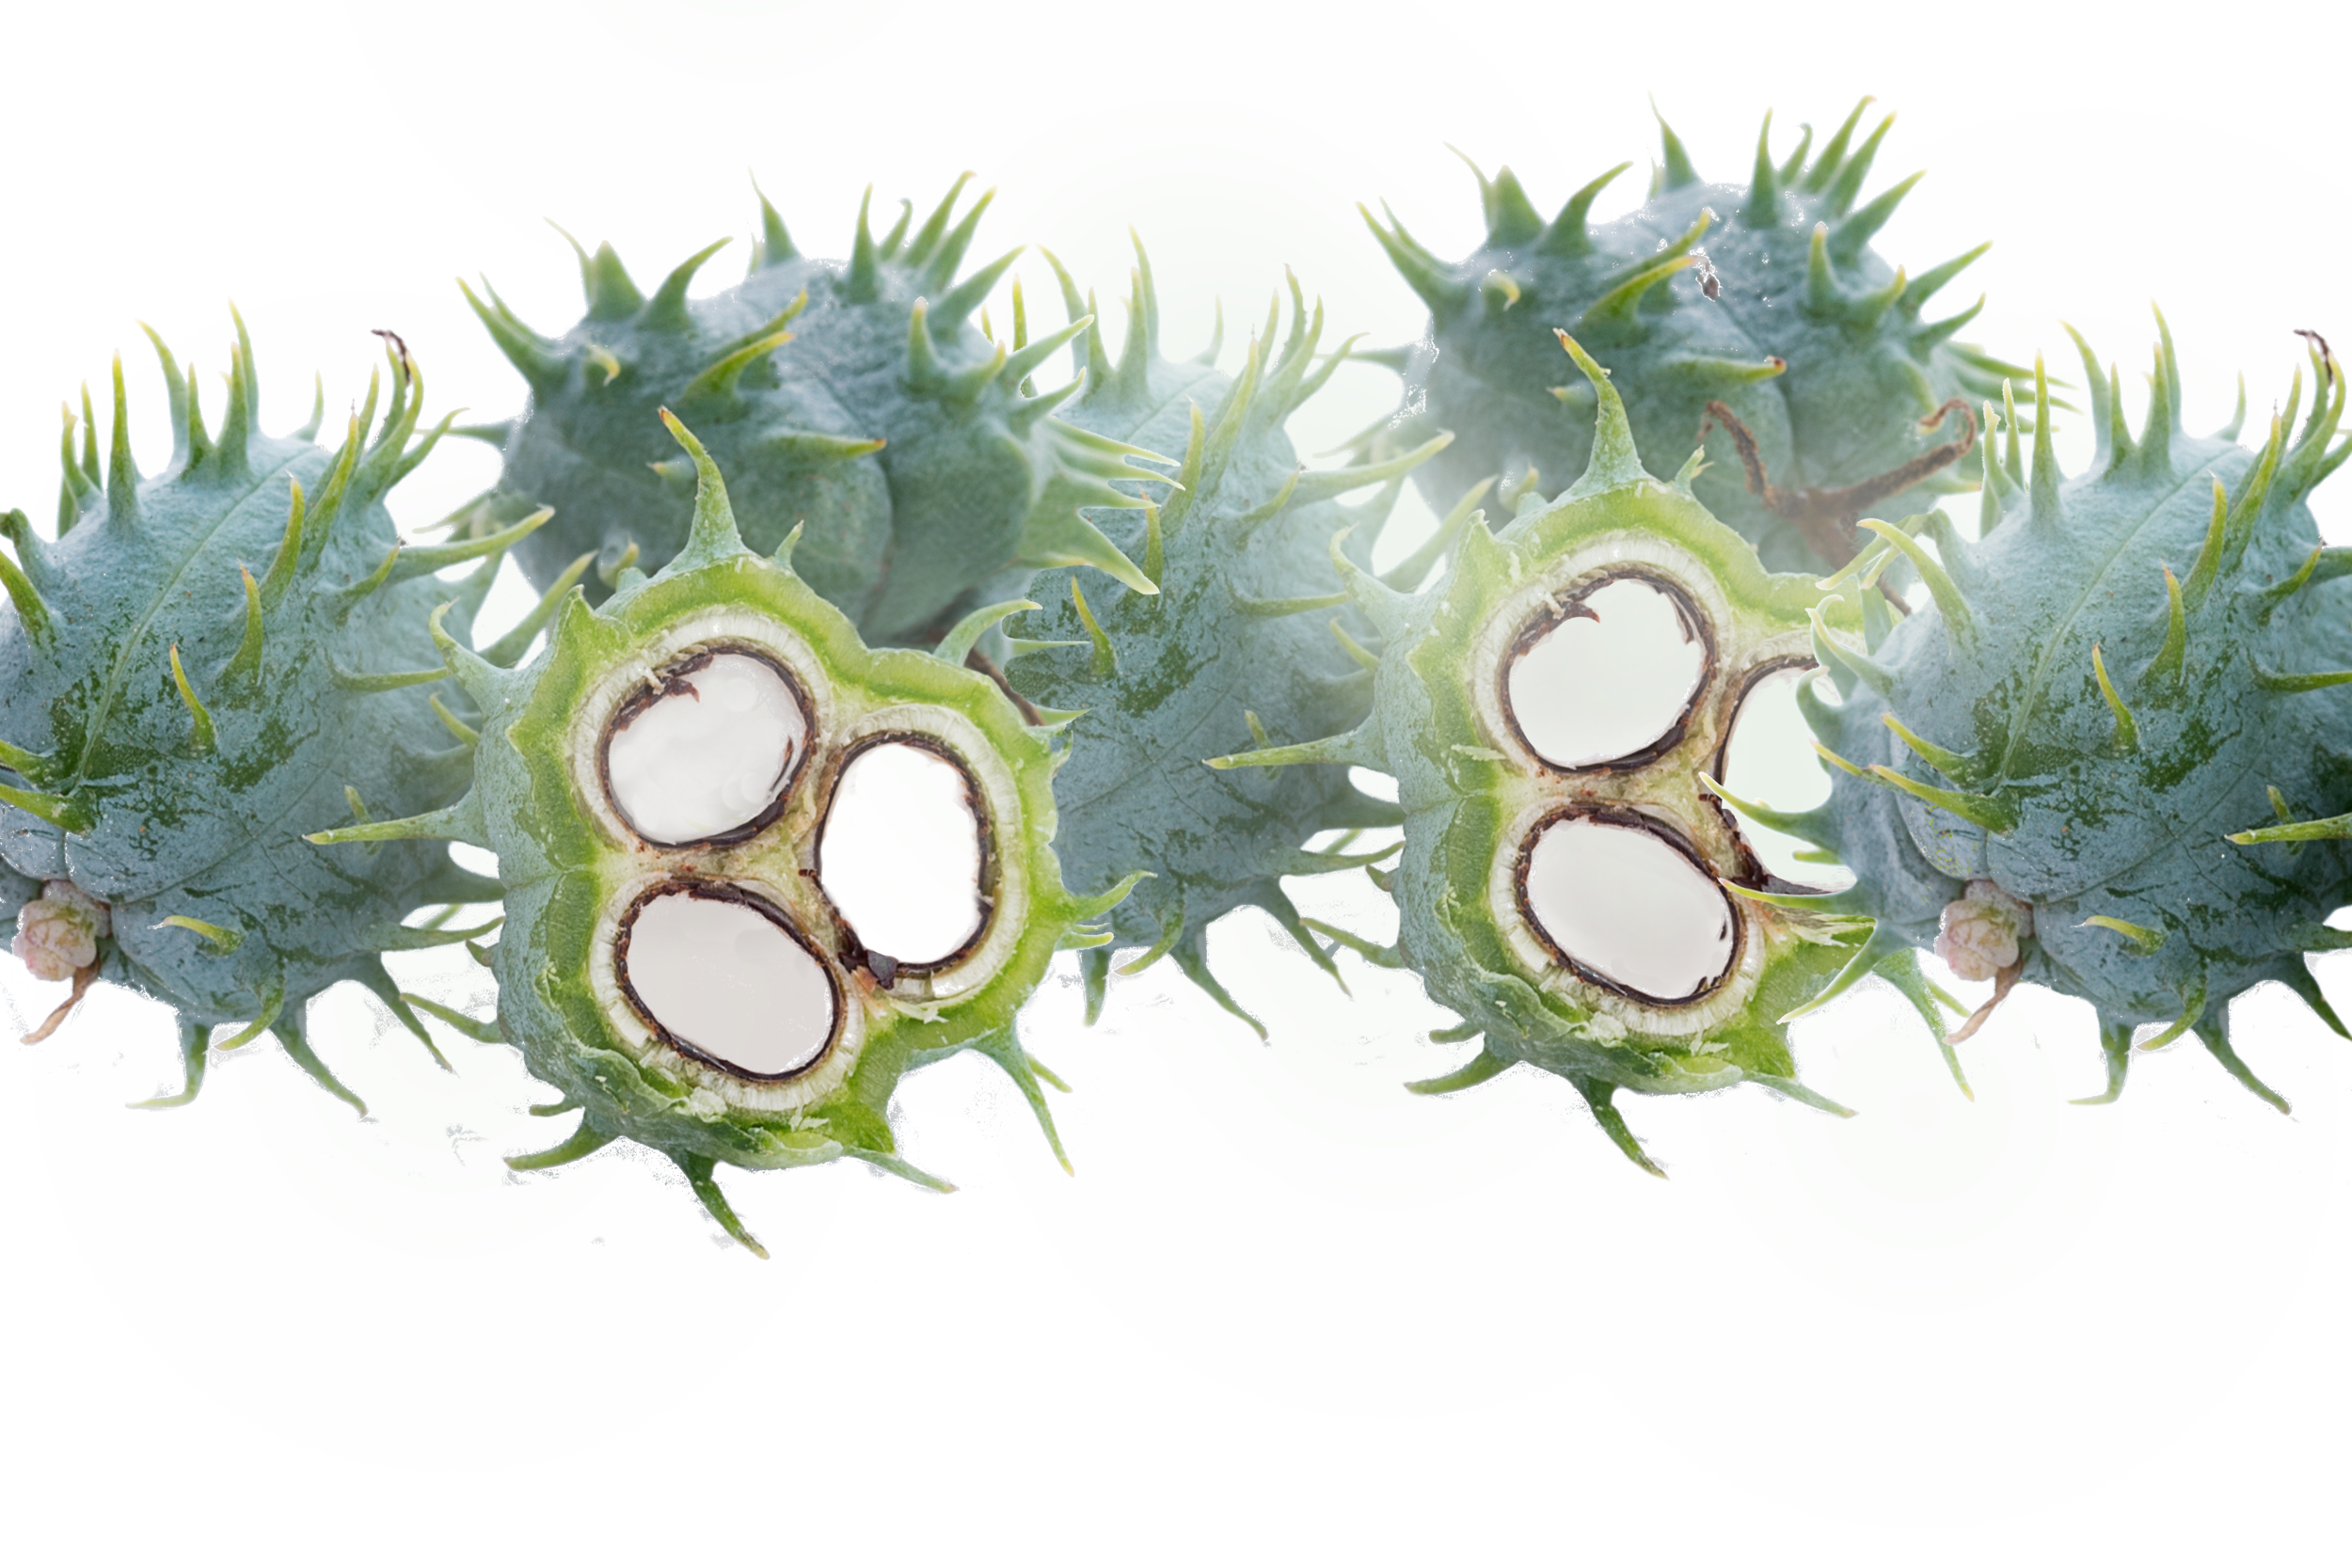 castor bean long image.png